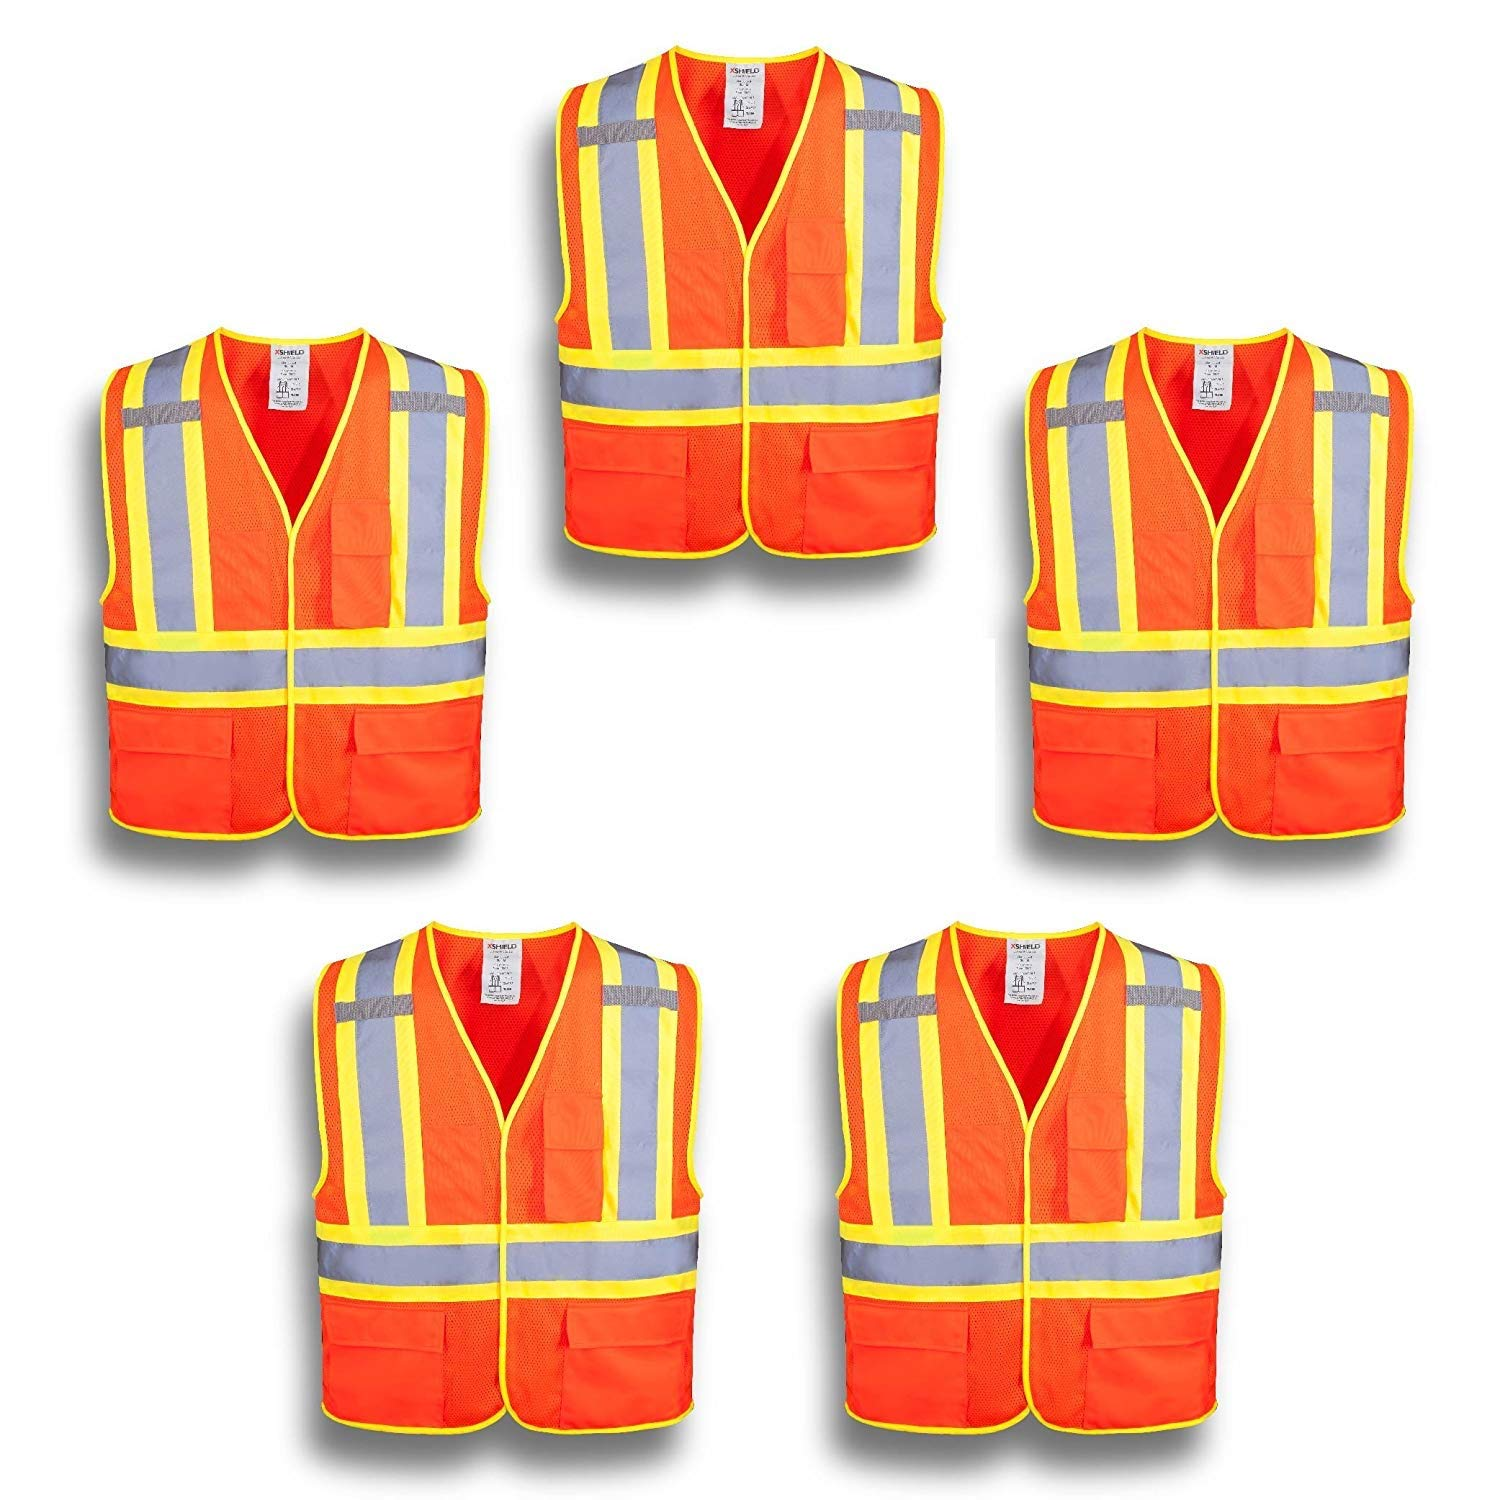 XSHIELD XS0100,High Visibility Safety Vest with Silver Stripe,ANSI/ISEA 107-2015 Type R Class2 Not FR,Pack of 5 (L, Orange)